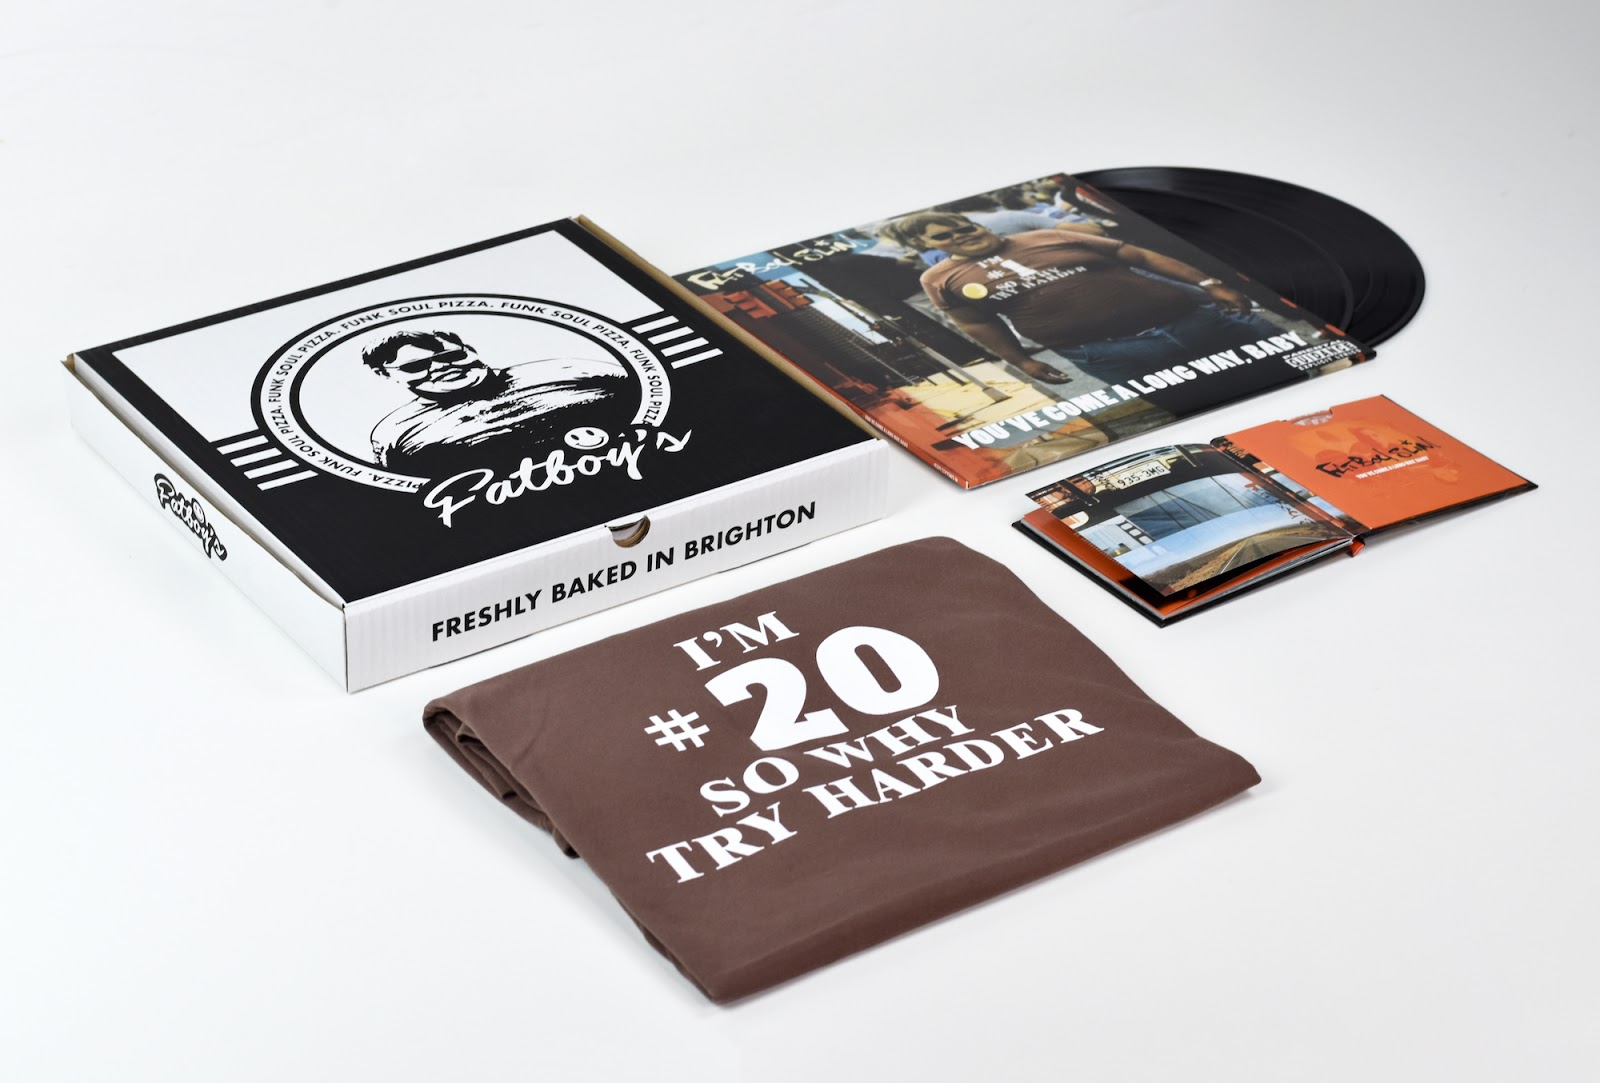 fatboy-slim_pizza-box_packshot_7